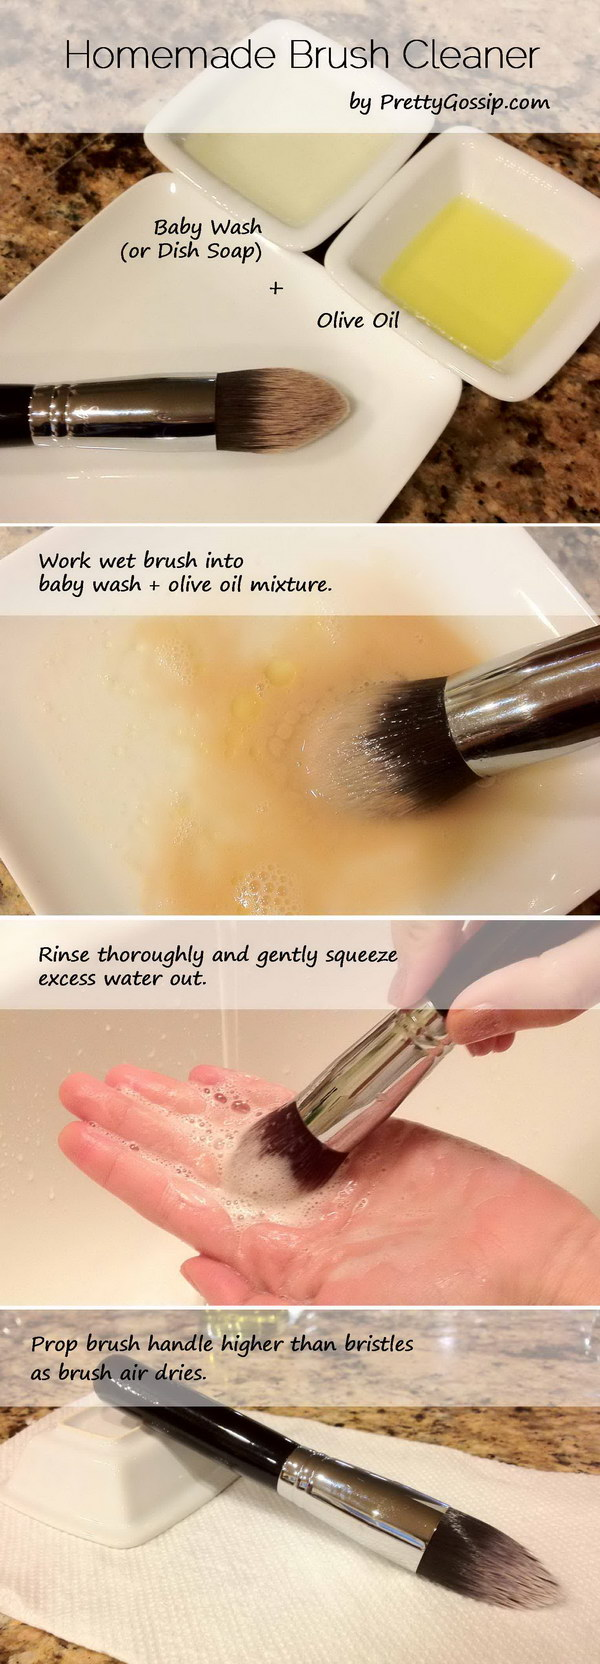 Homemade Makeup Brush Cleaner With Olive Oil And Dish Soap.